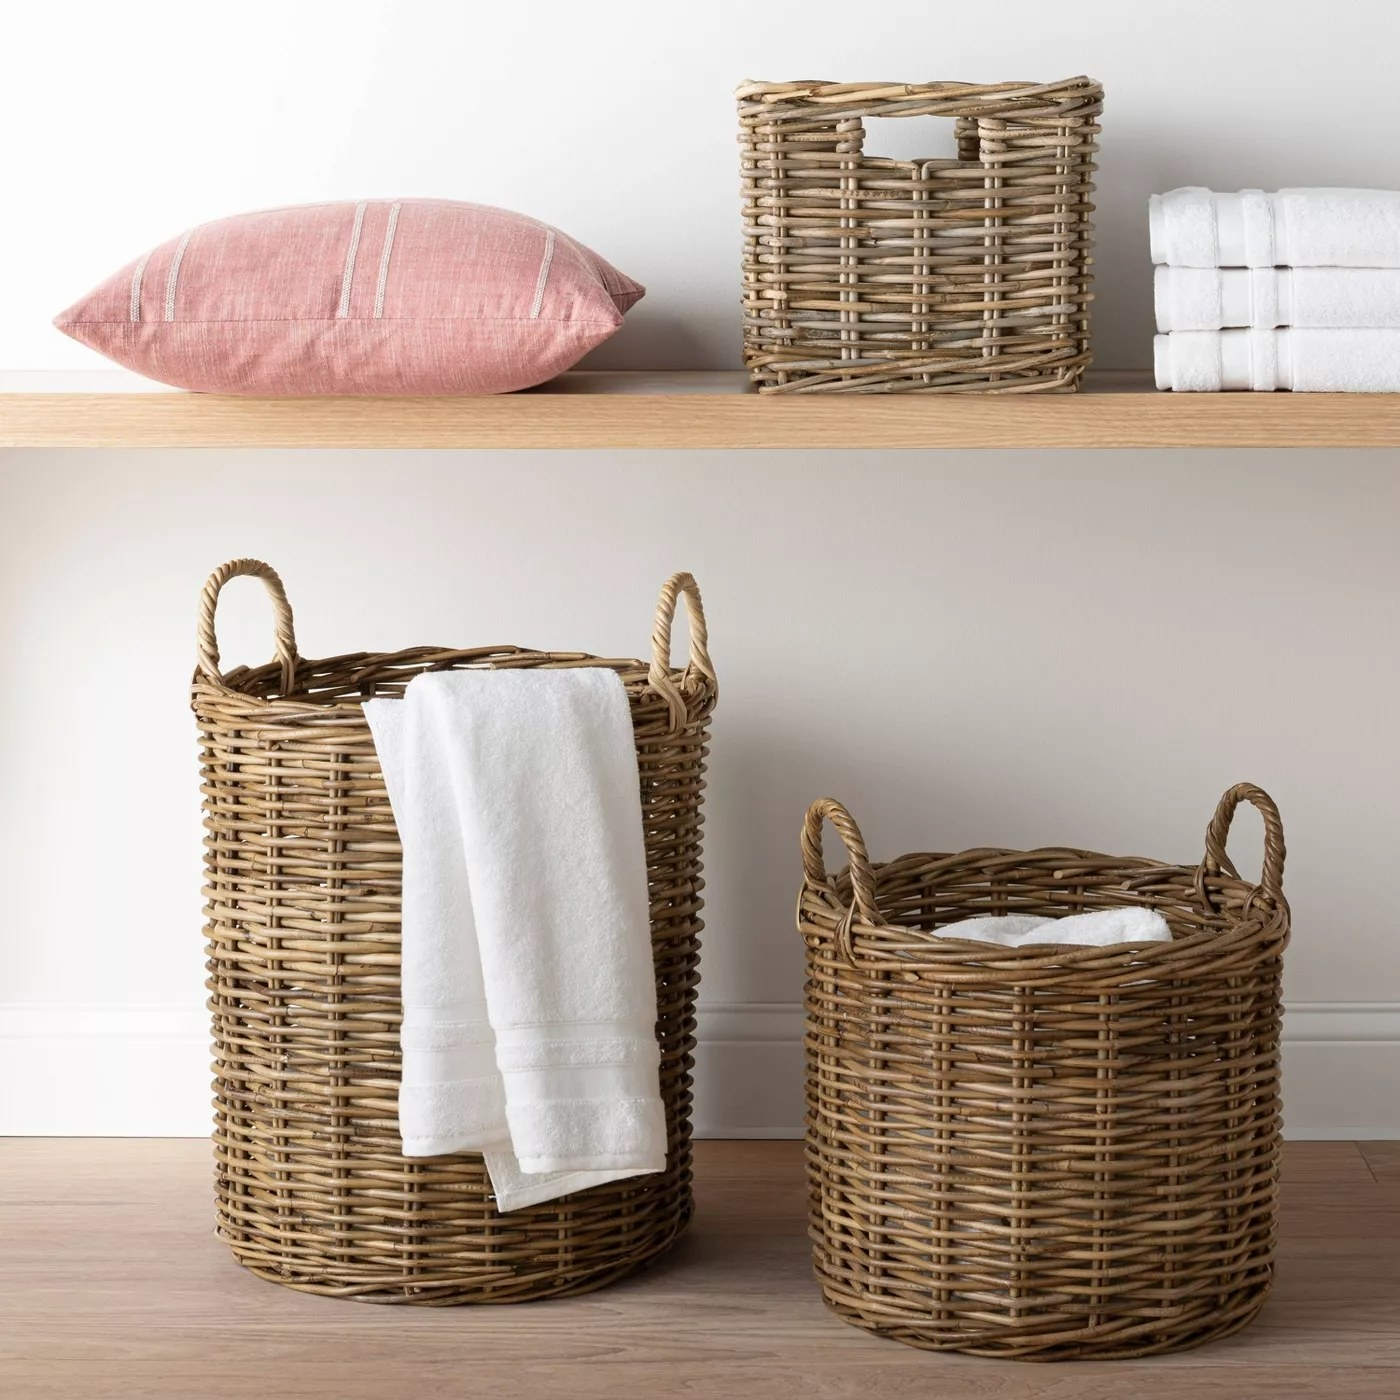 The two woven baskets holding towels